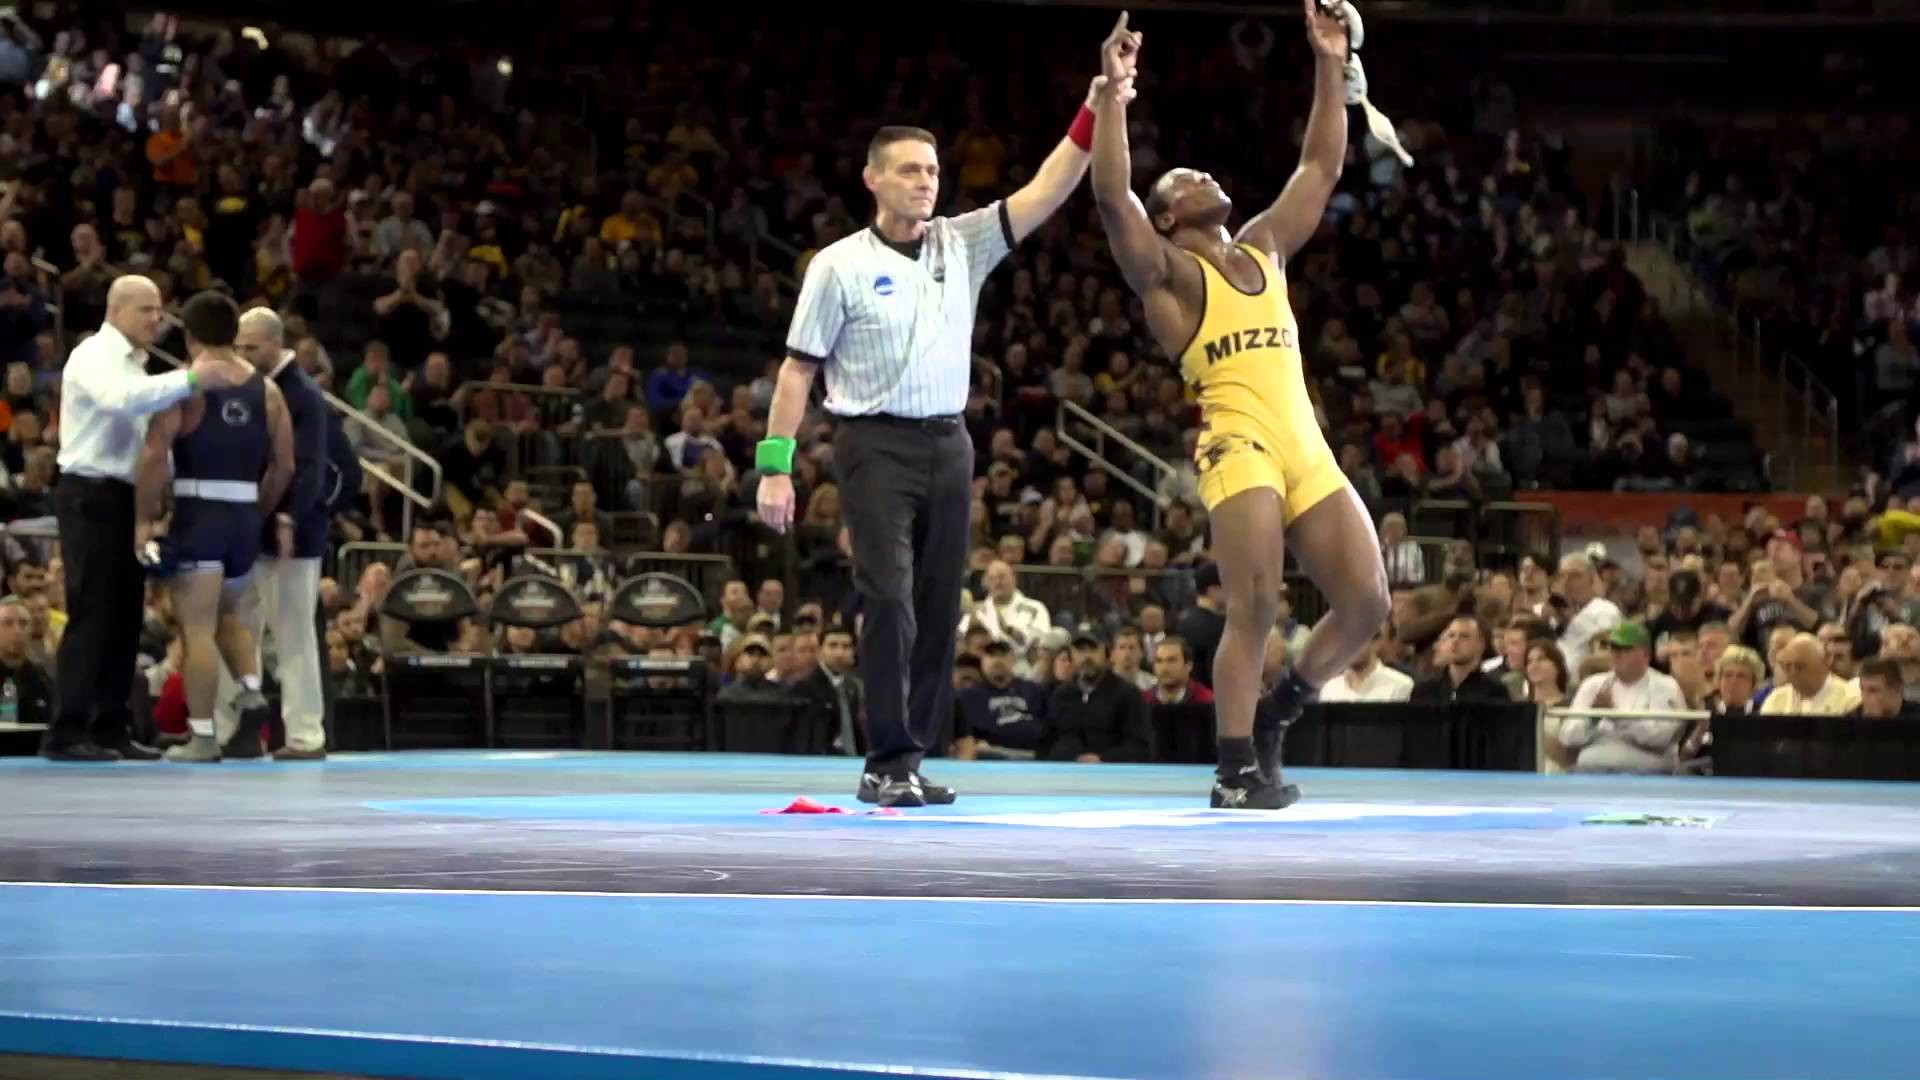 1920x1080 2016 NCAA DI Wrestling Championships: The Big Stage in the Big City